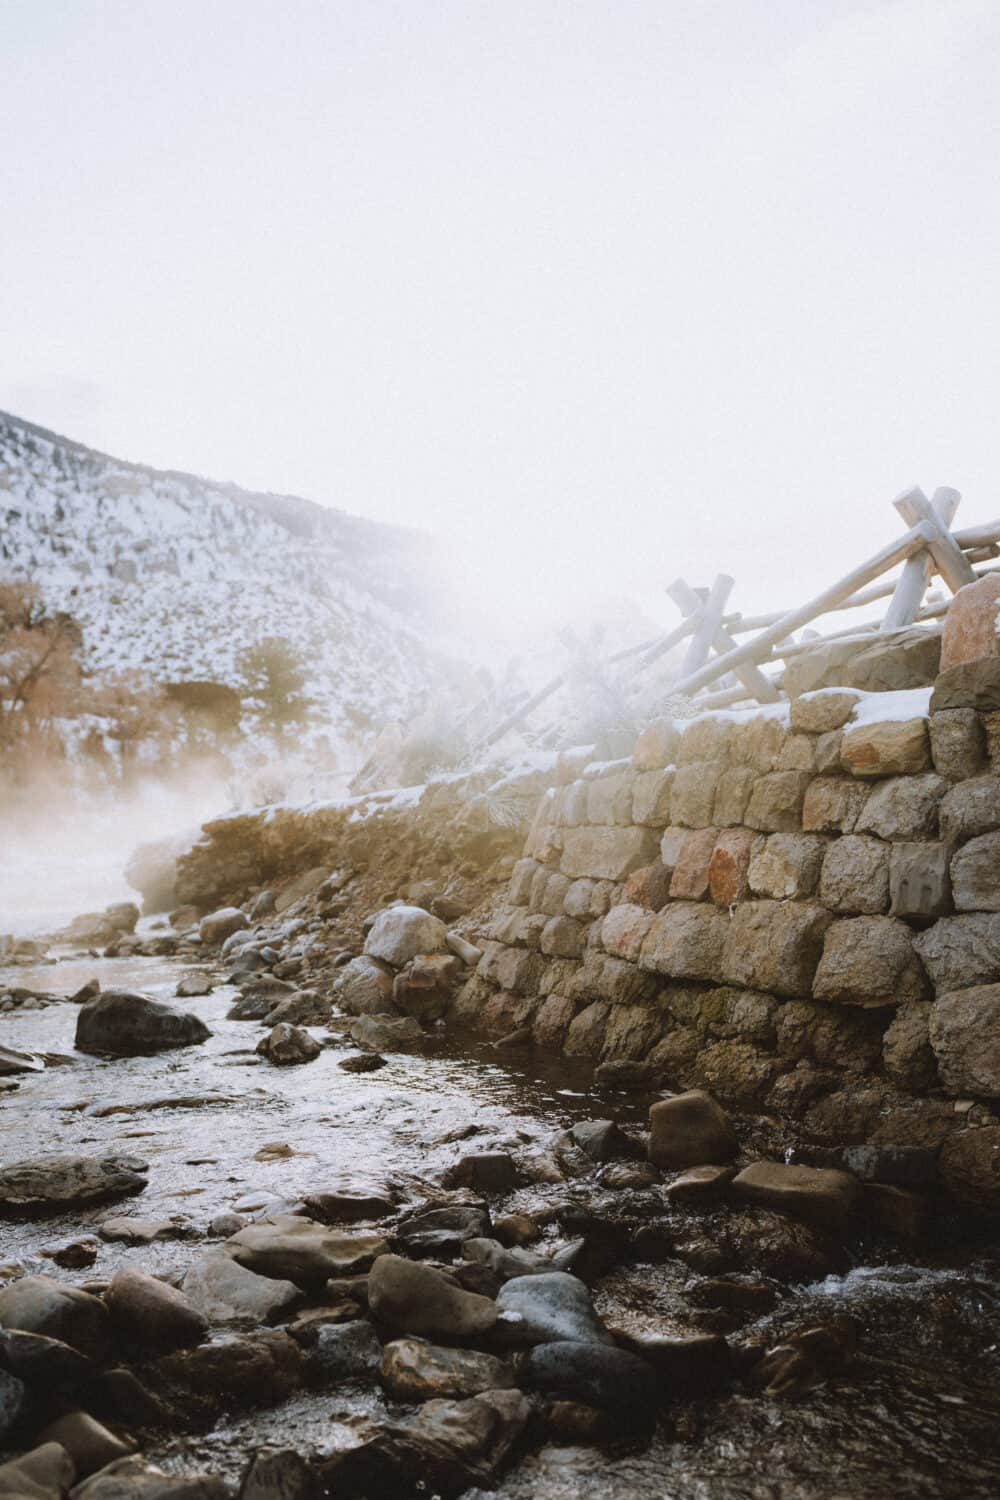 Manmade Barriers at the Boiling River hot springs - themandagies.com